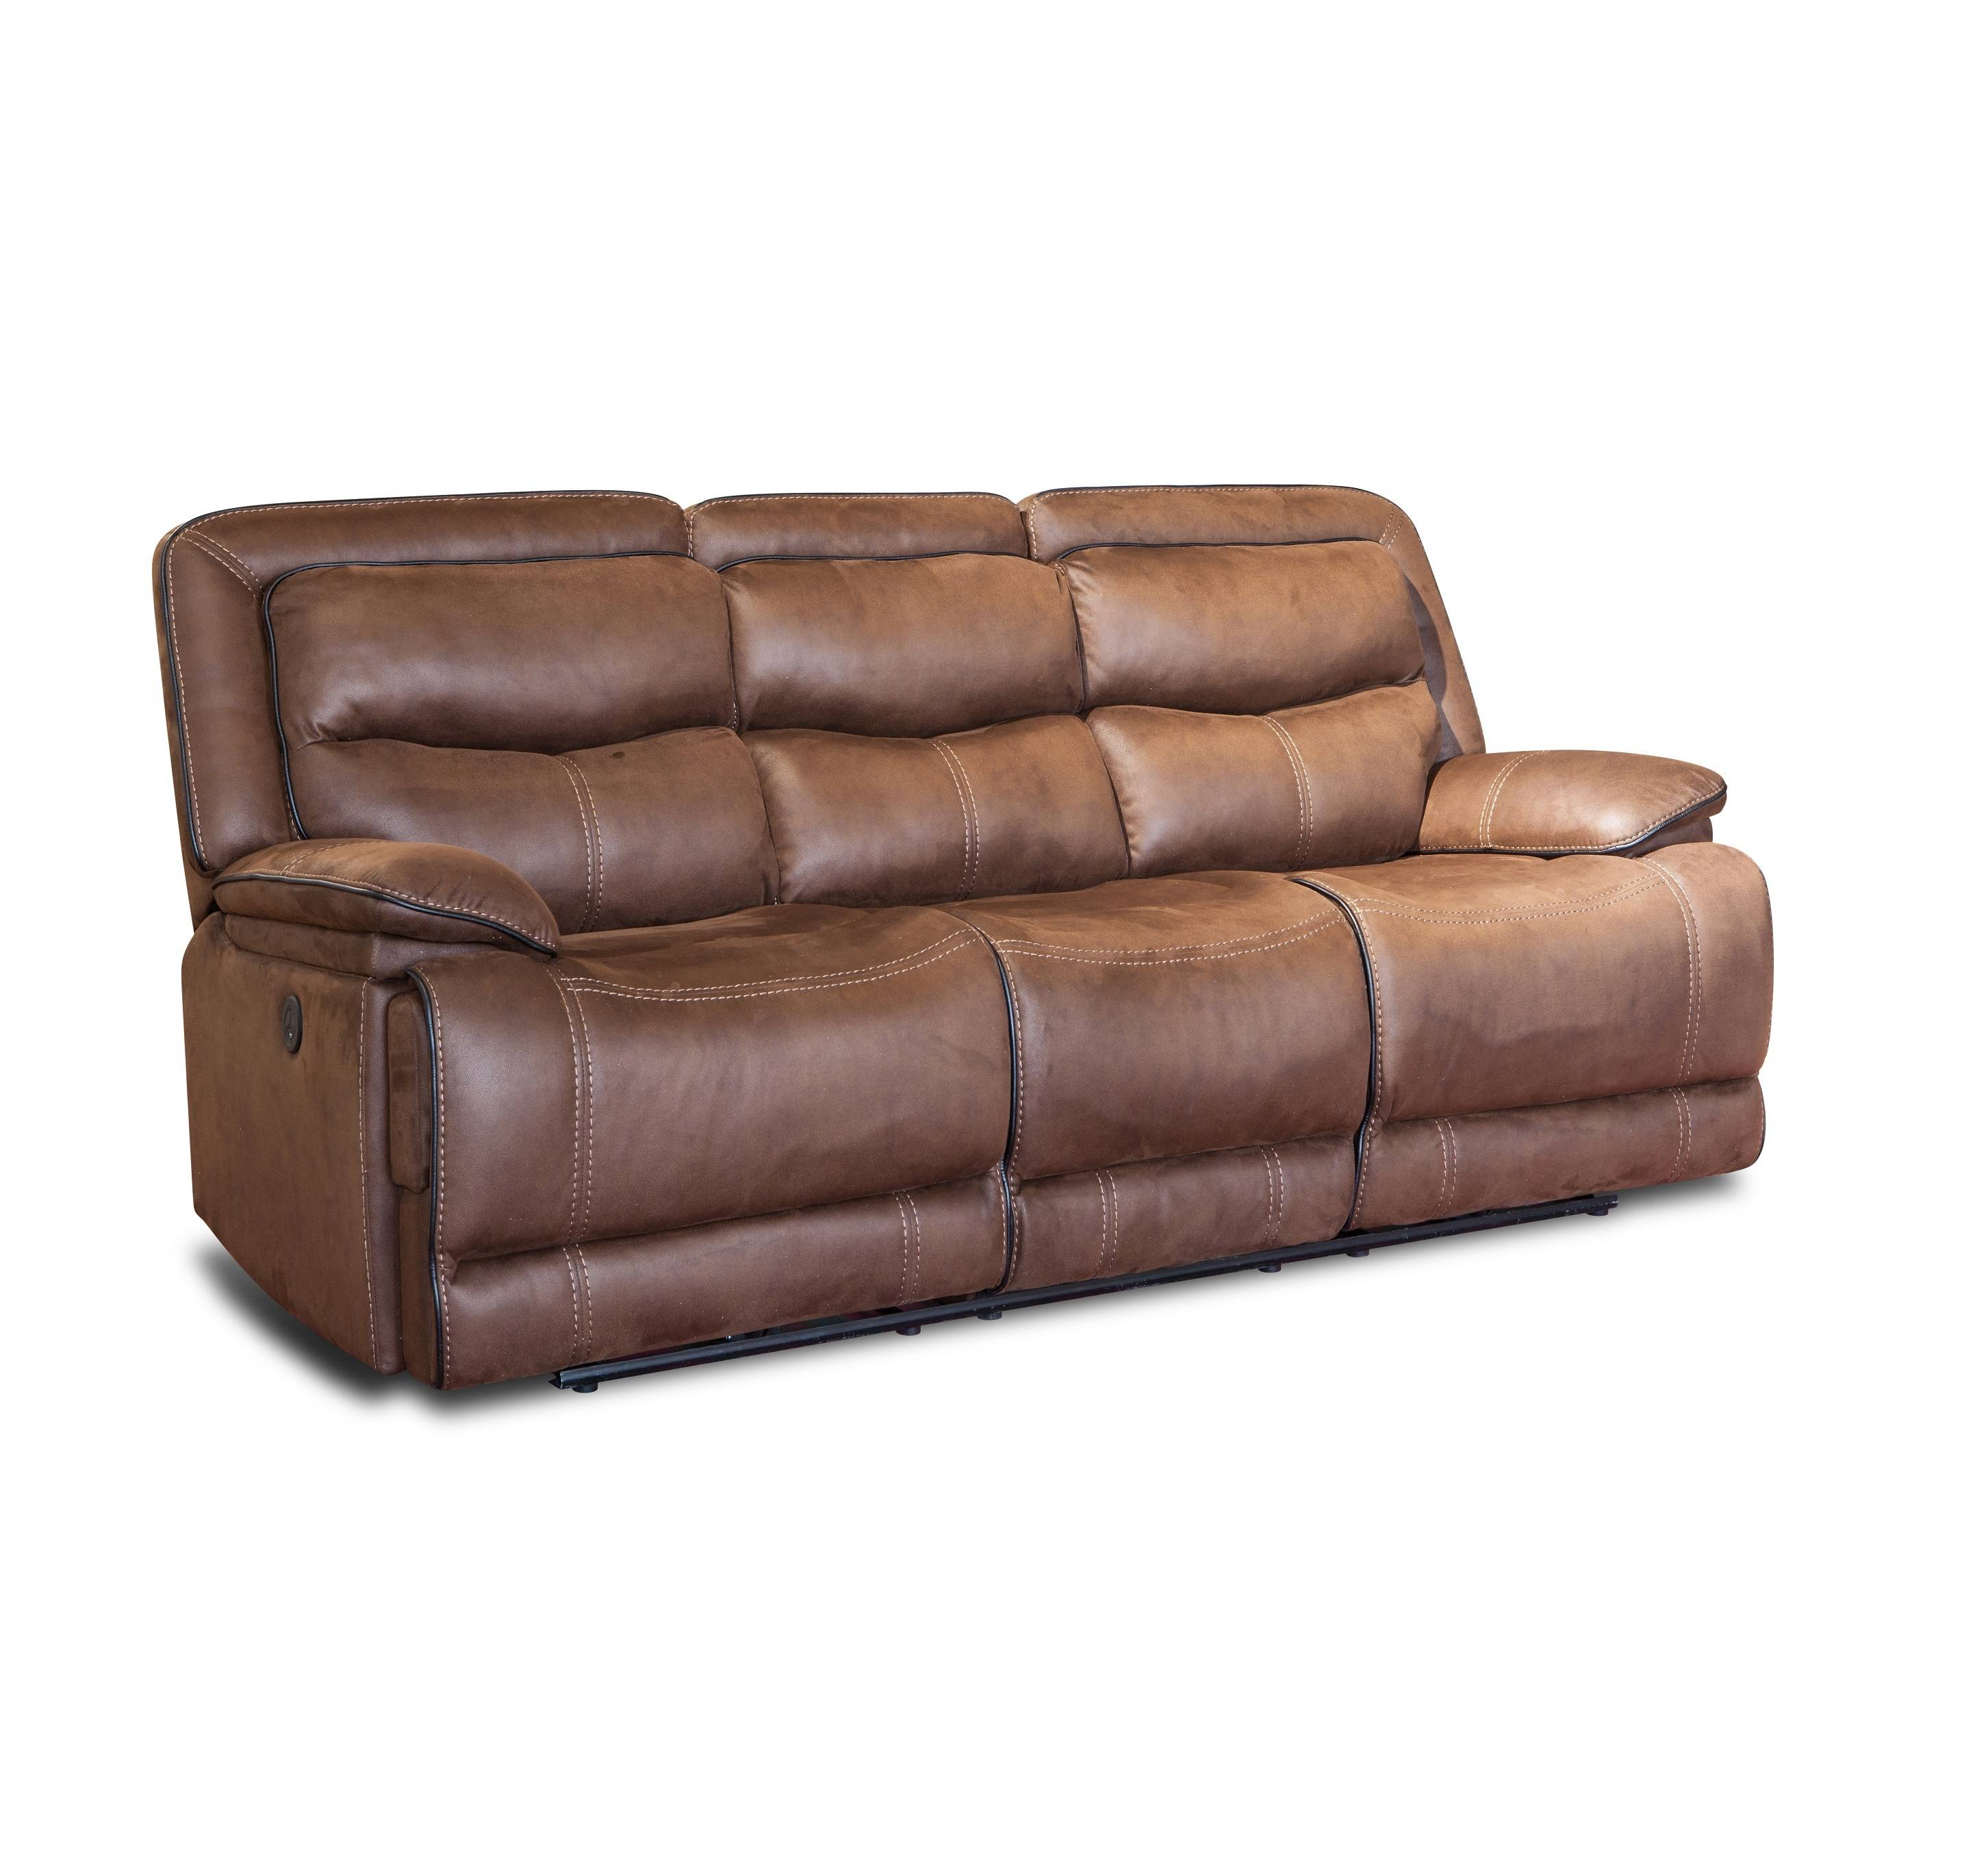 American style power electric recliner sofa leather